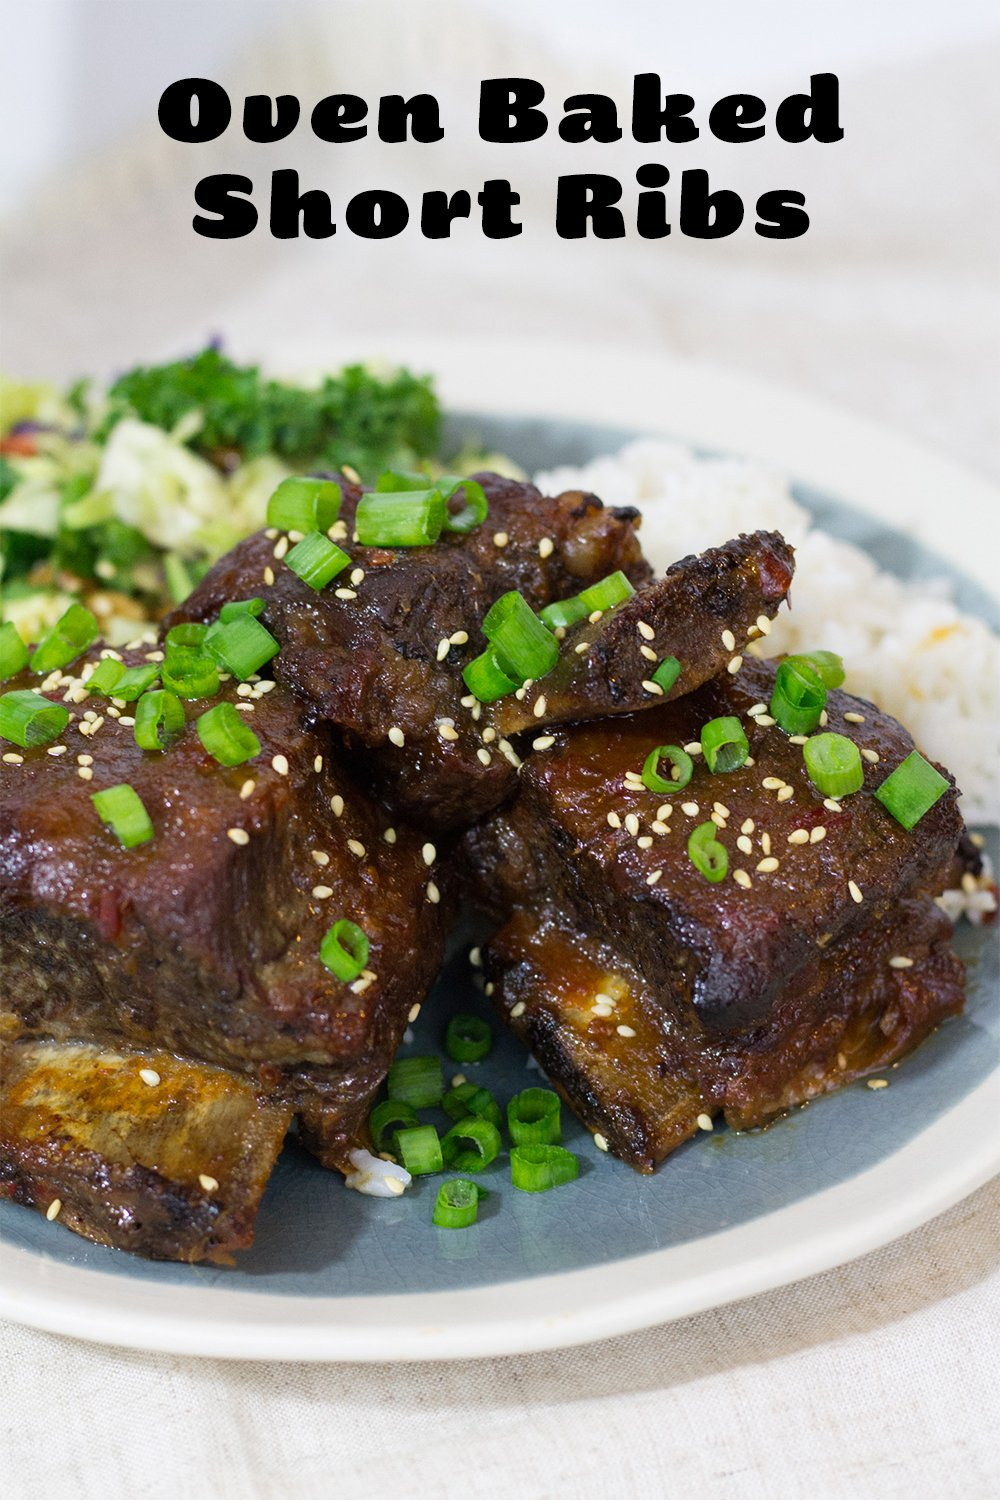 Oven Baked Short Ribs With Marion's Kitchen Marinade